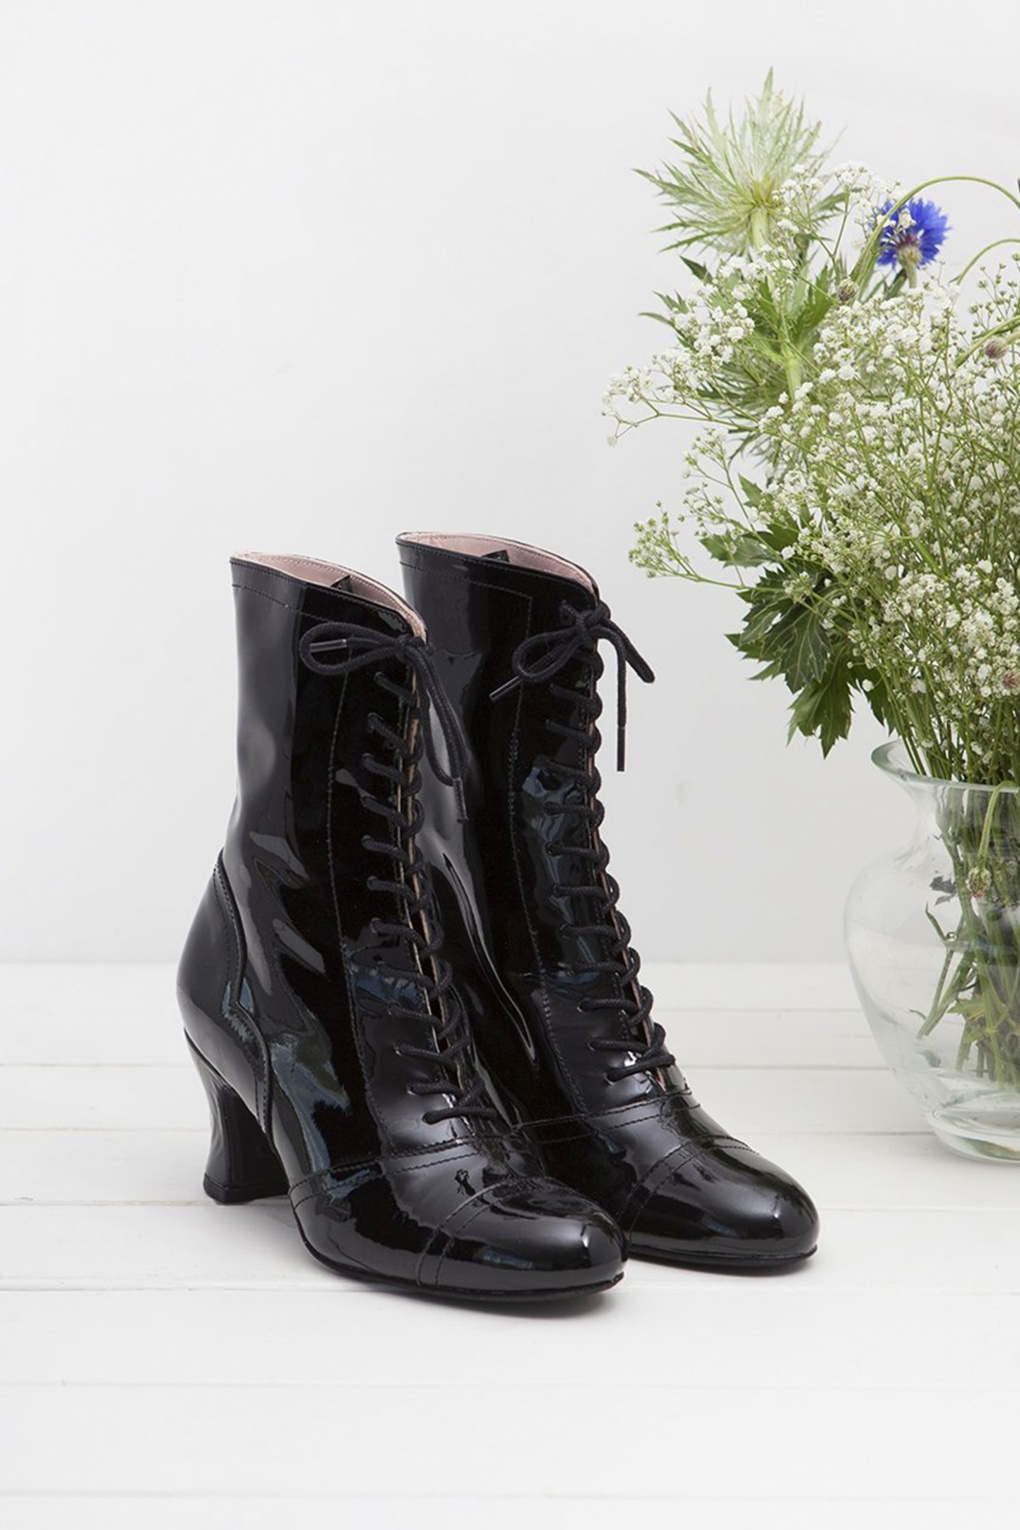 1940s Style Shoes, 40s Shoes Frida Lace Up Booties in Patent Black £170.39 AT vintagedancer.com